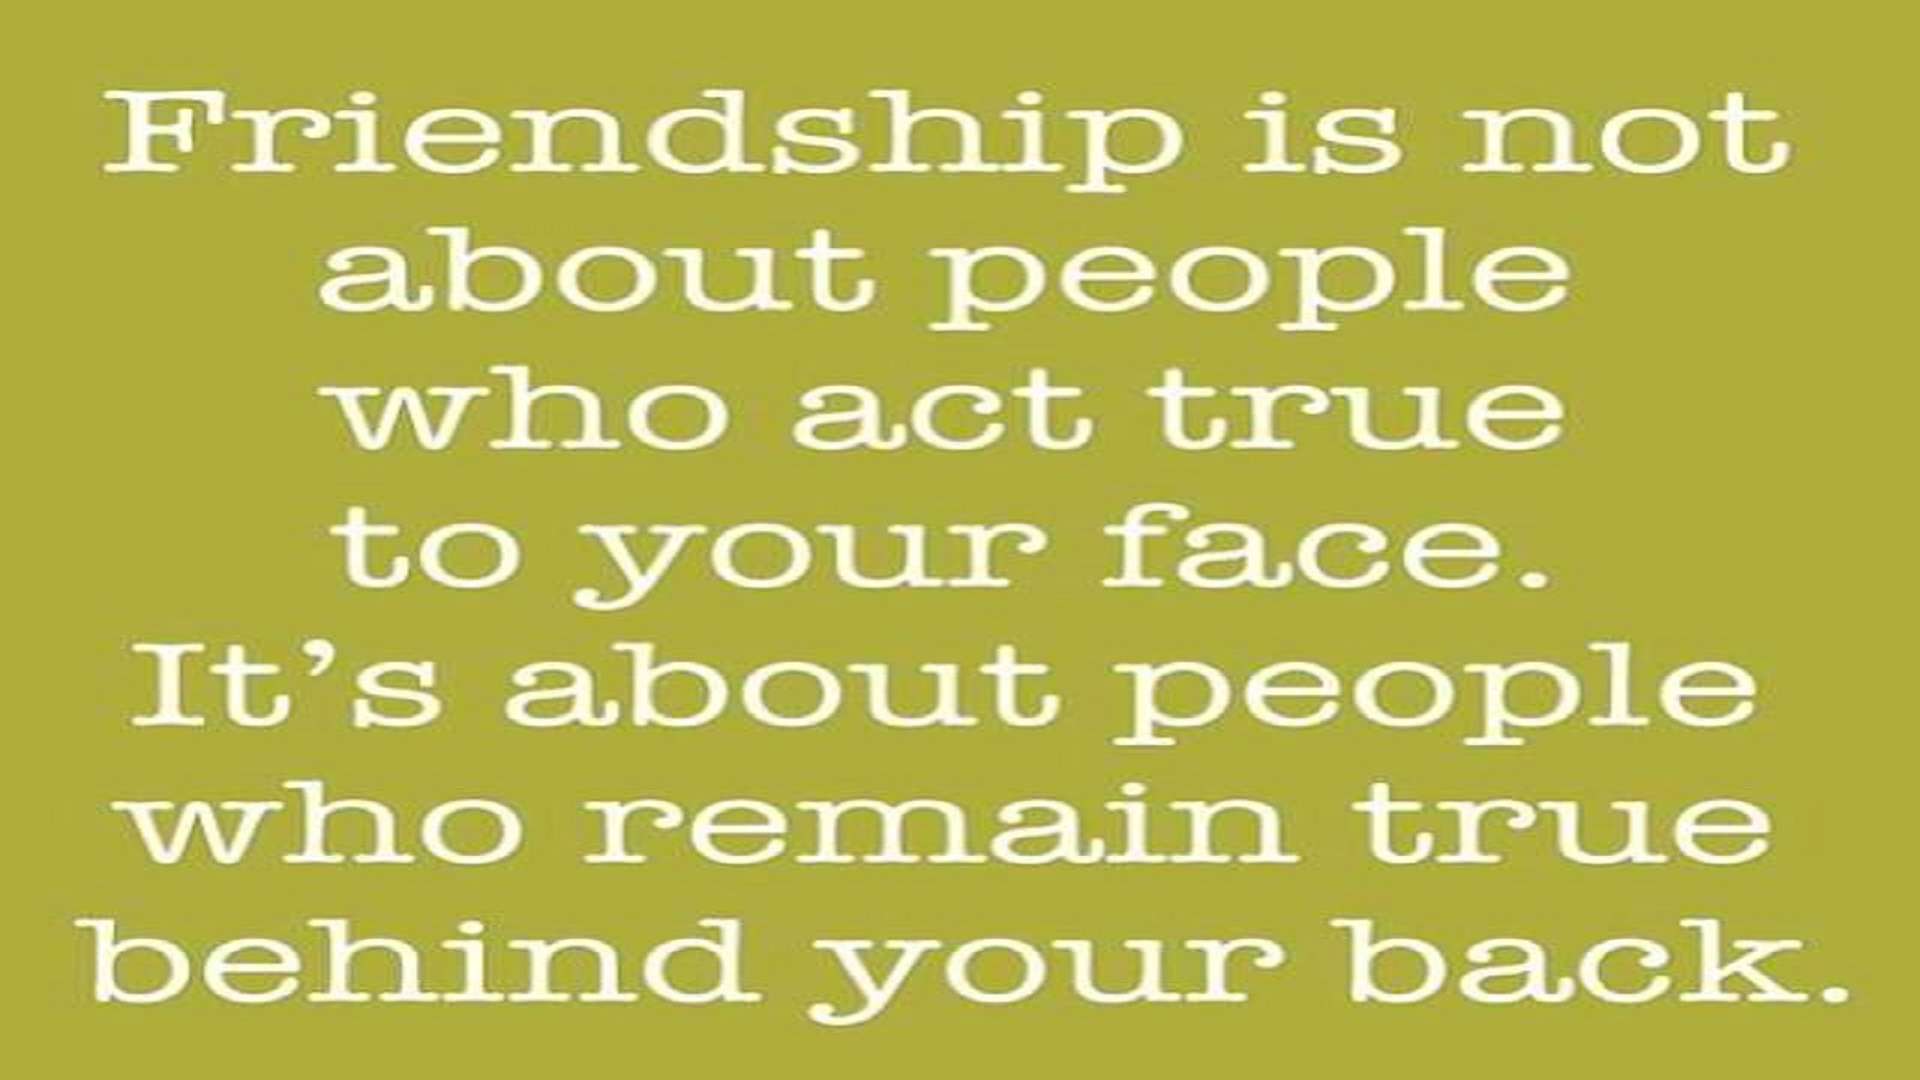 Quotes On Friendship Bestandfunnyfriendshipquotefreehdwallpapers  Hd Wallpaper